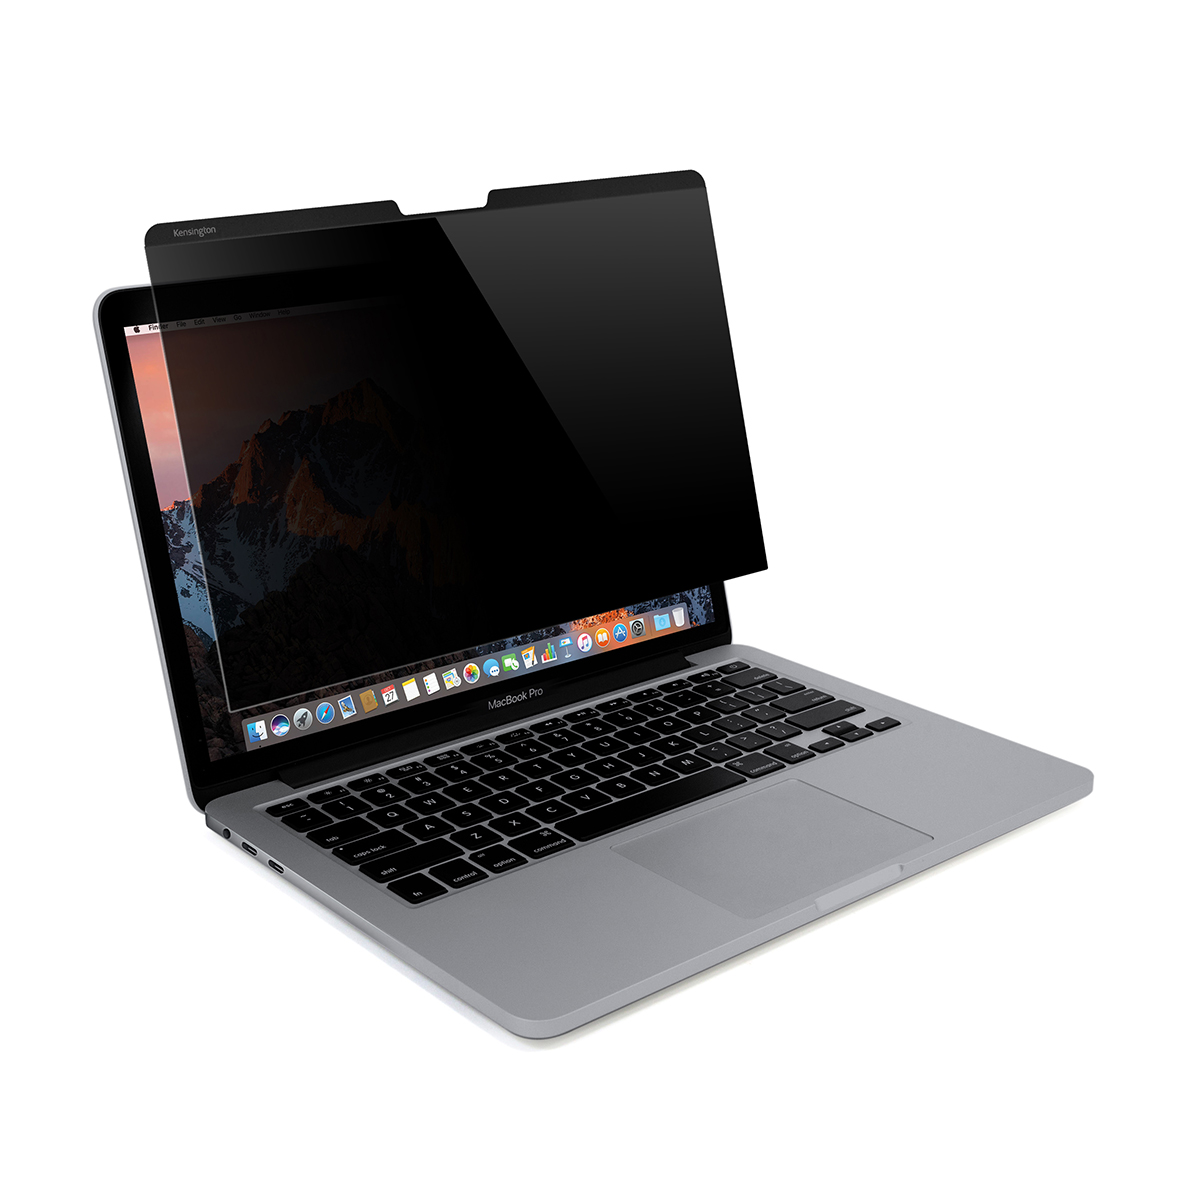 Kensington K64491WW Mag Privacy Filter for MacBook Pro 15 Inch